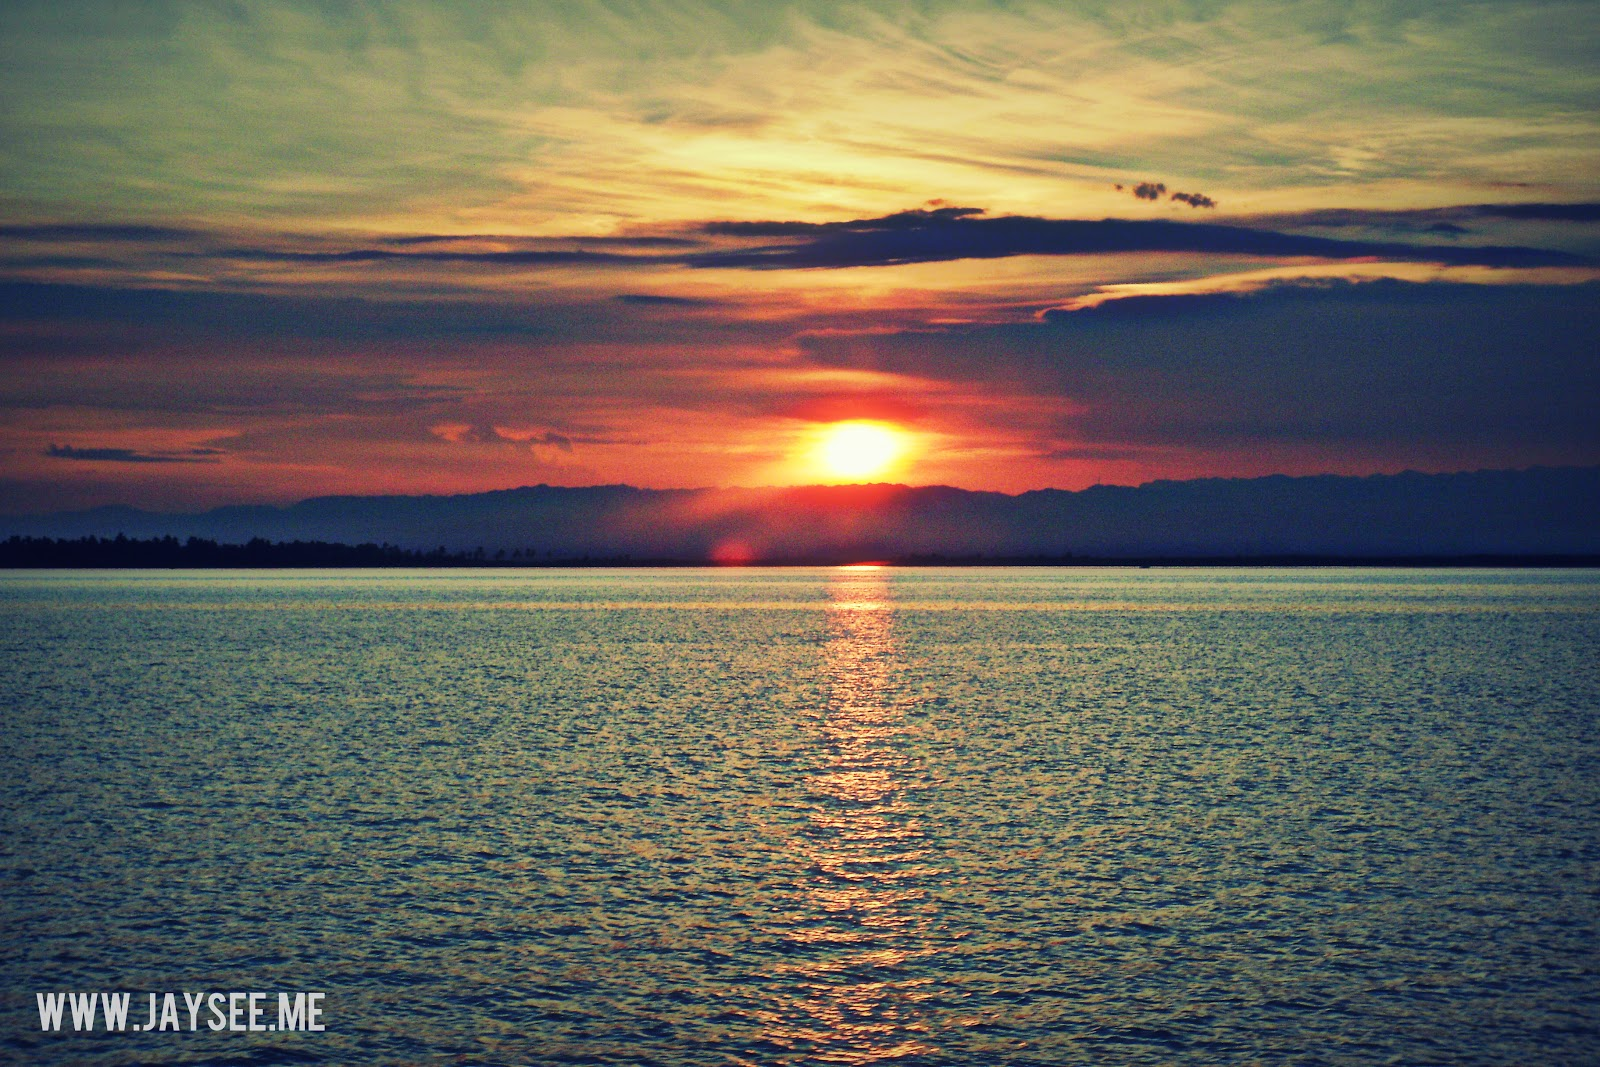 bohol wakefest philippines wakeboarding event sunset